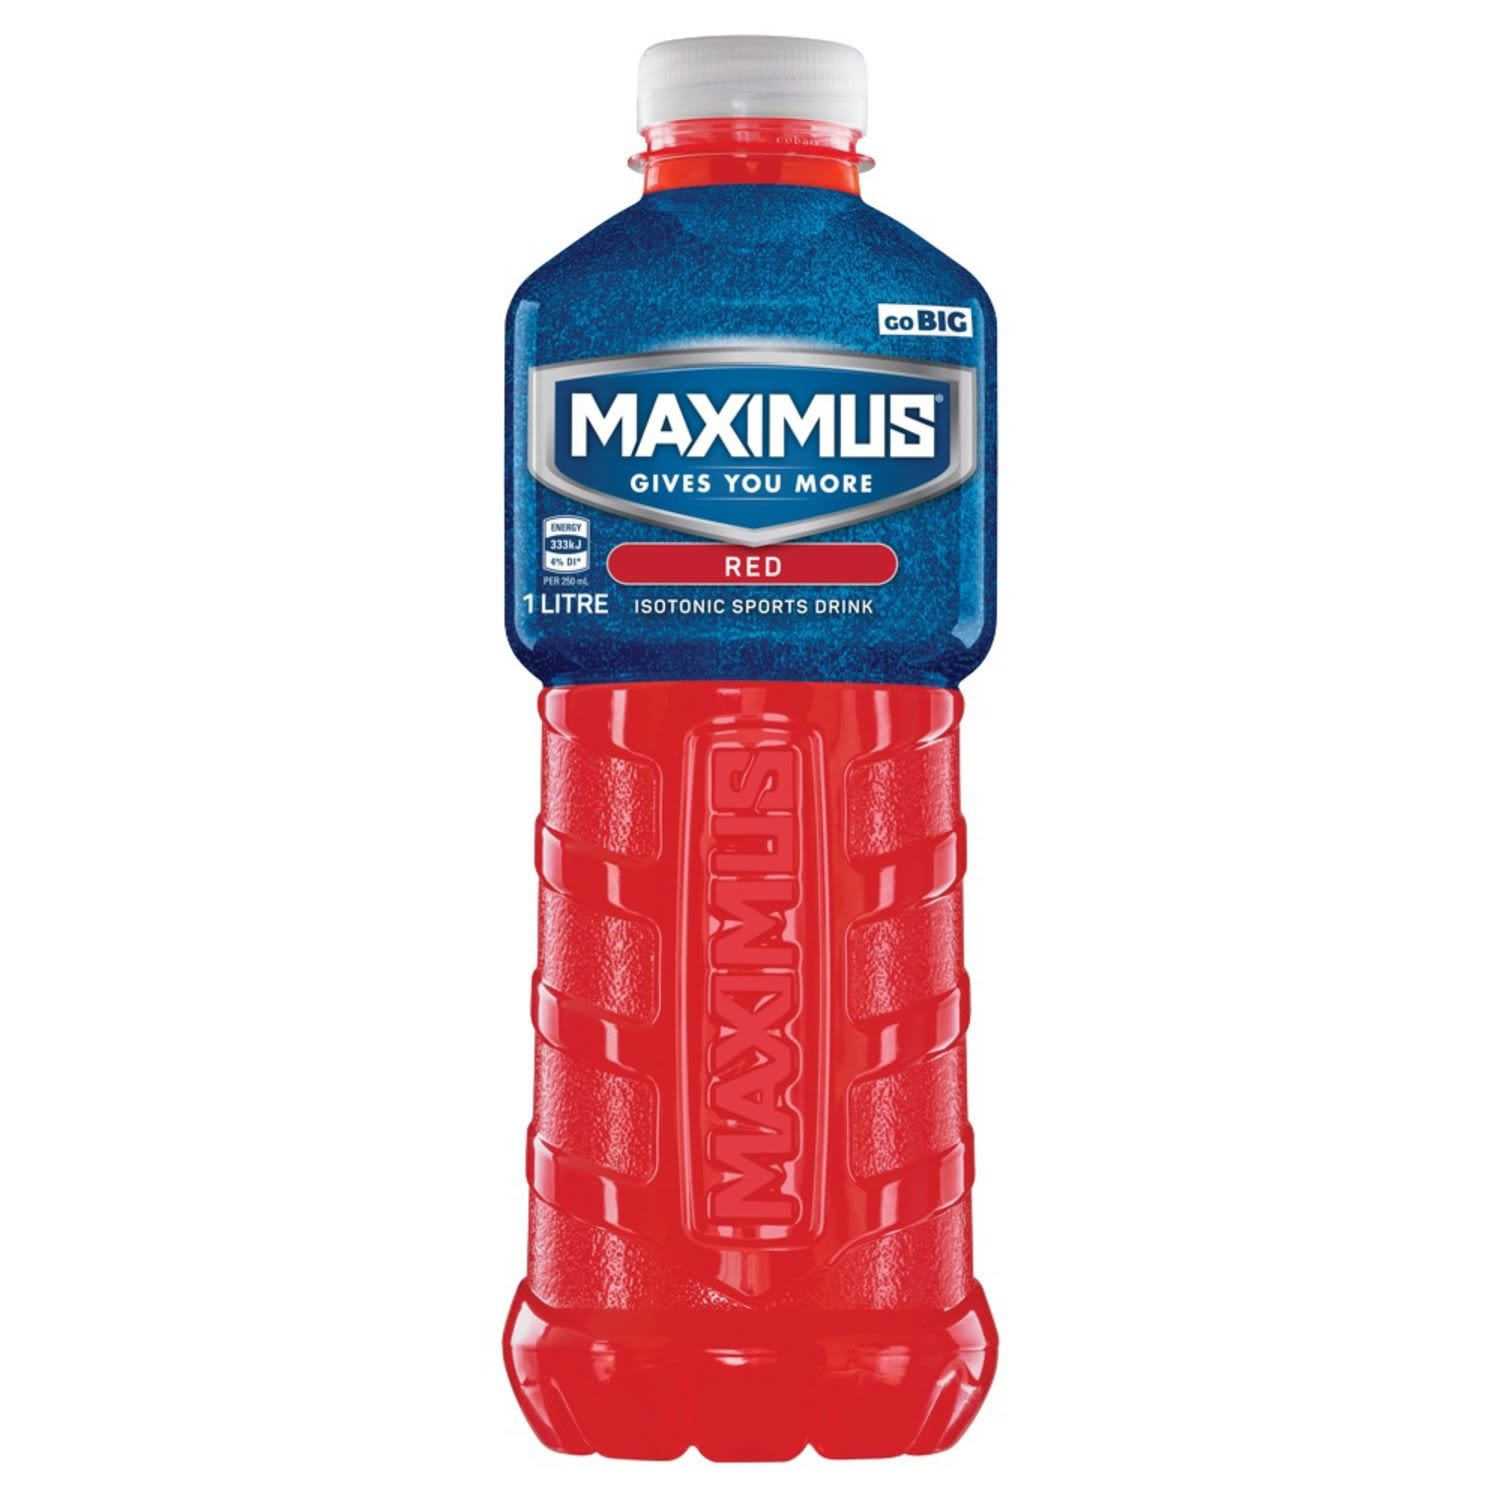 Maximus Isotonic Sports Drink Red, 1 Litre